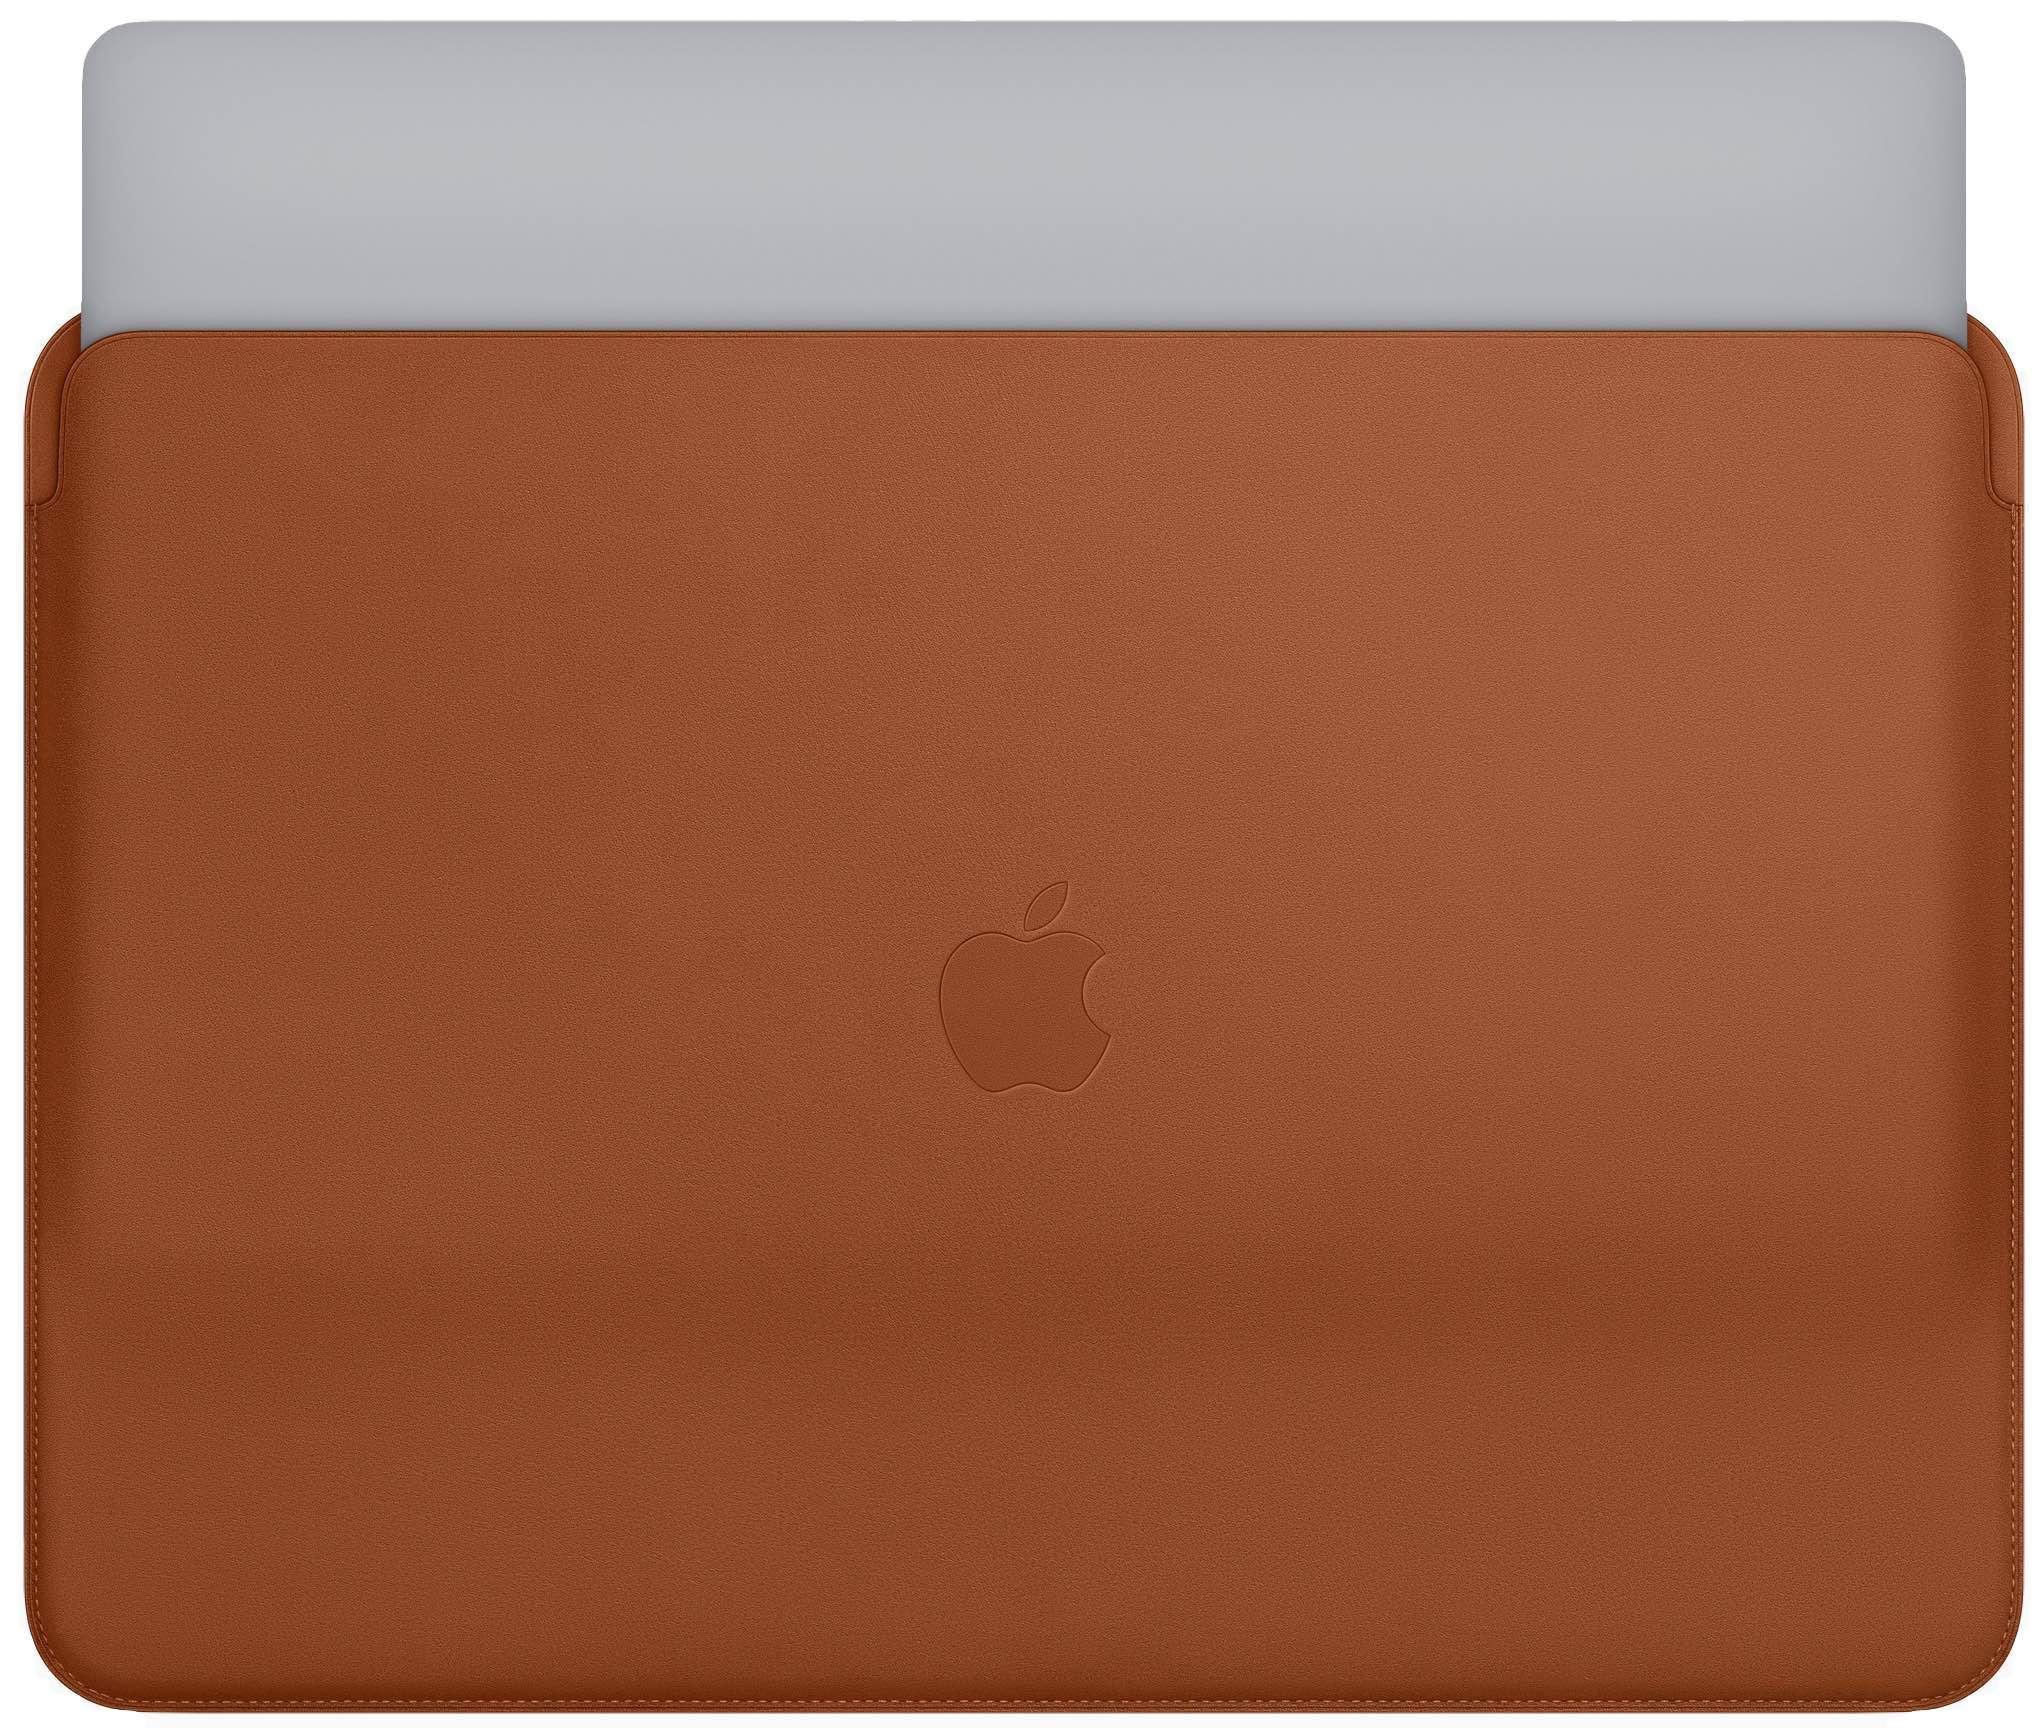 detailed look df14b 3e702 You can buy Apple's quality but pricey leather sleeve for your ...